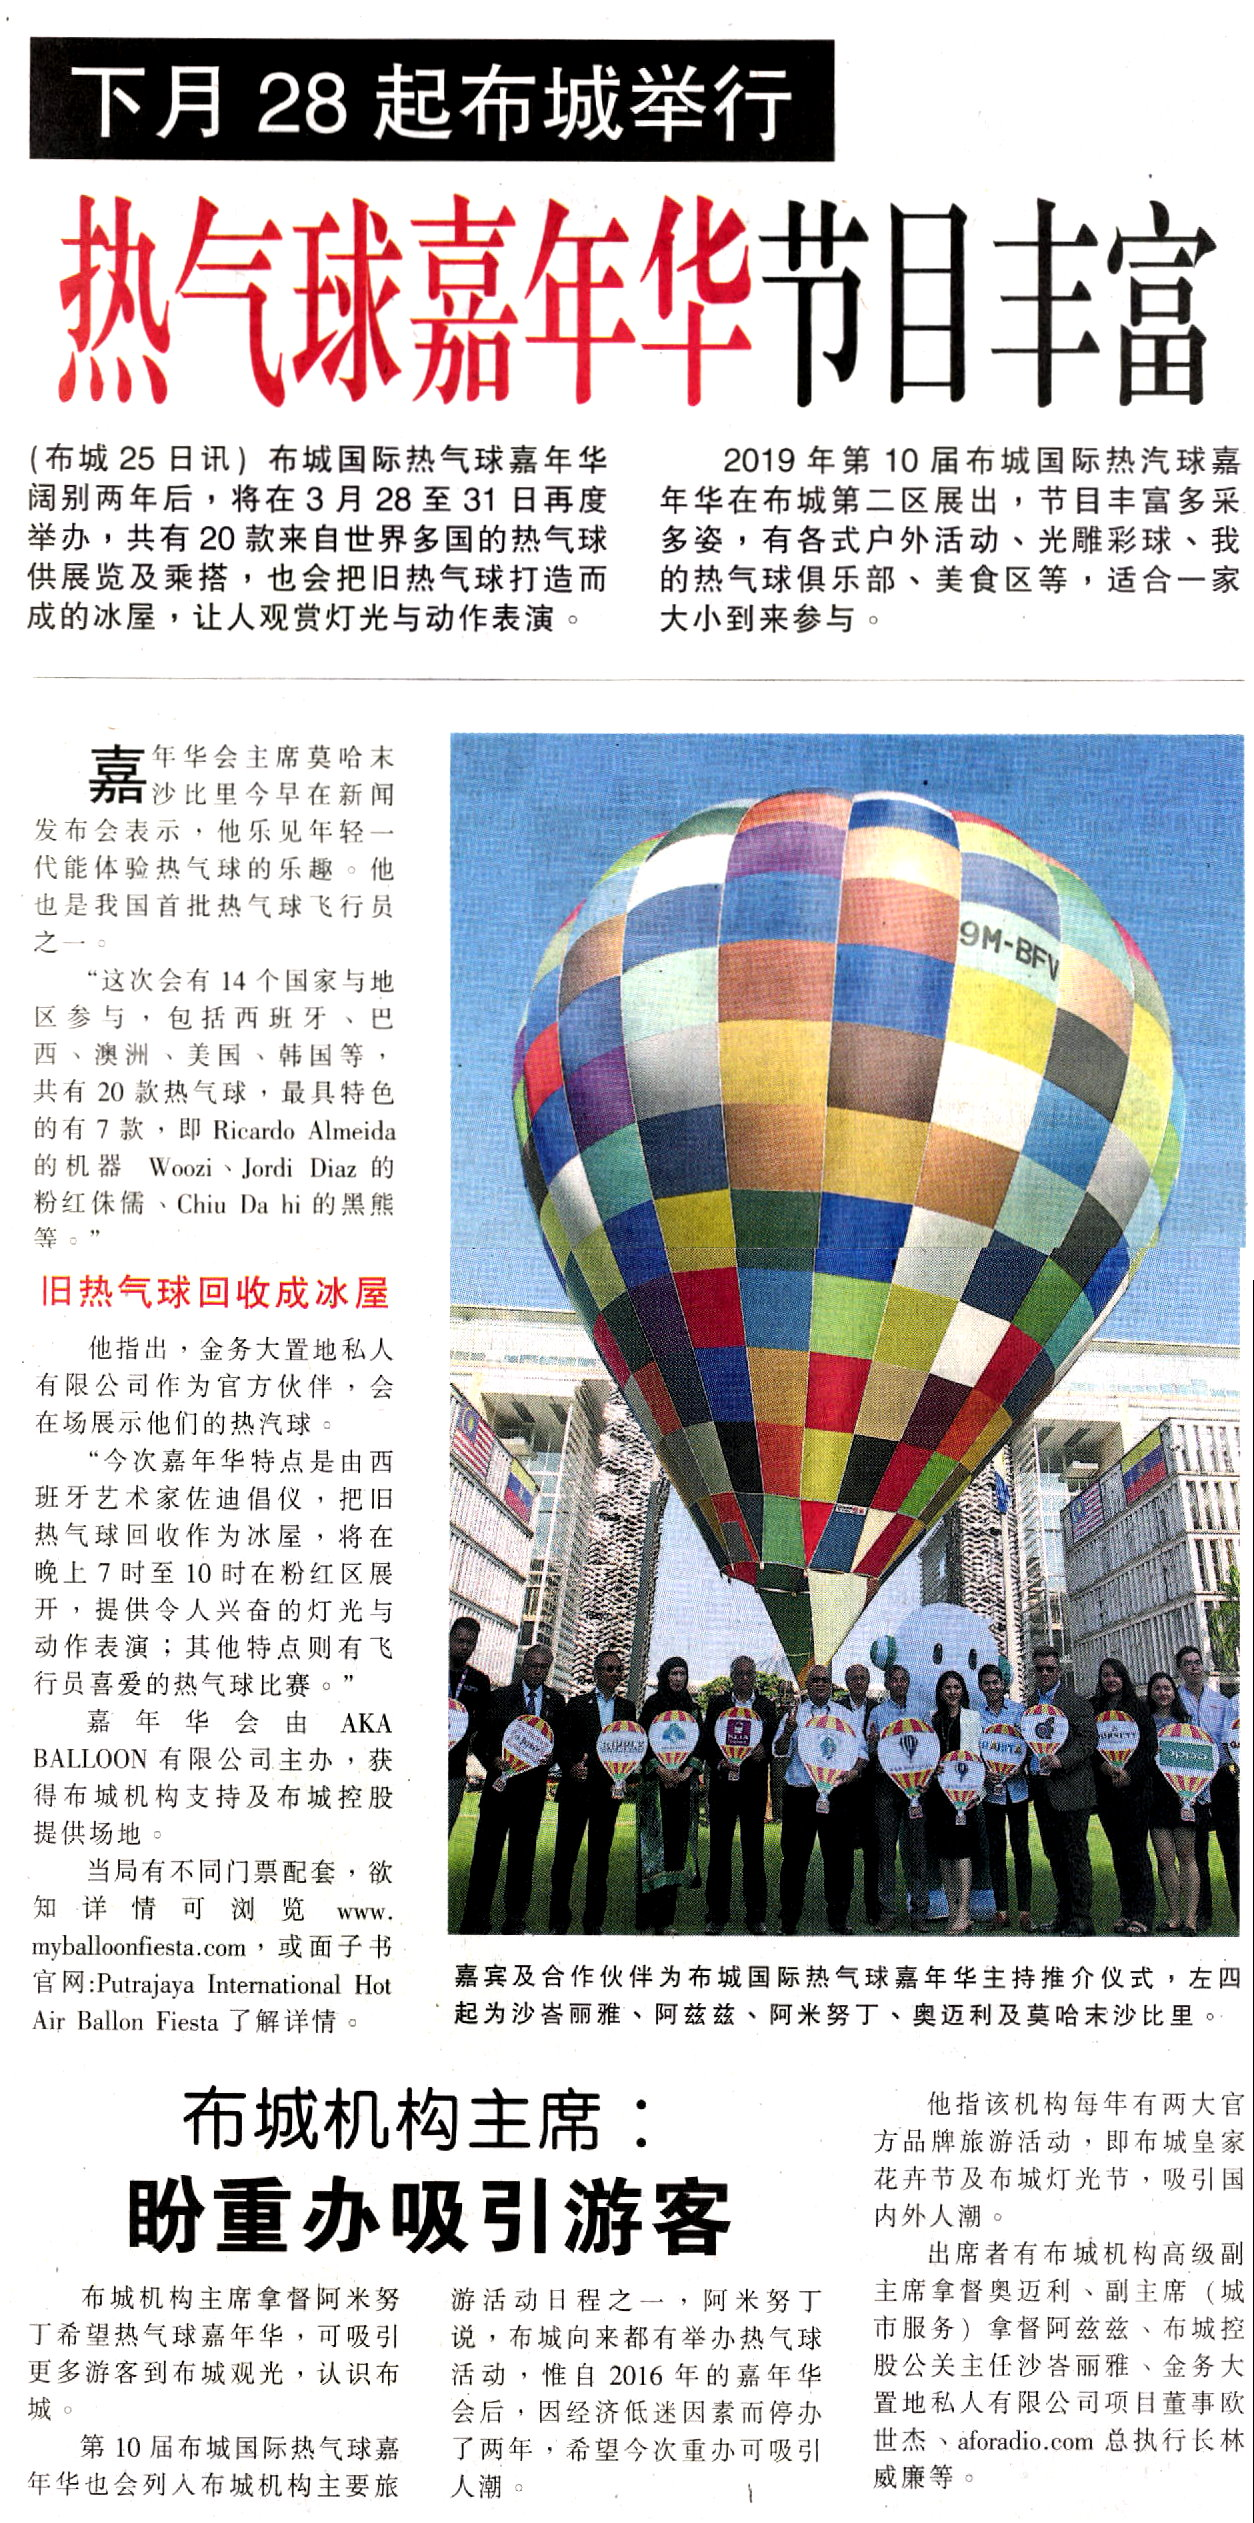 20190226_N60_NYS_GDC_6_FC_HOT~AIR~BALLOON~FIESTA~EXCITING~EVENT~NEXT~MONTH~28TH~HOLD~AT~PUTRAJAYA.jpg